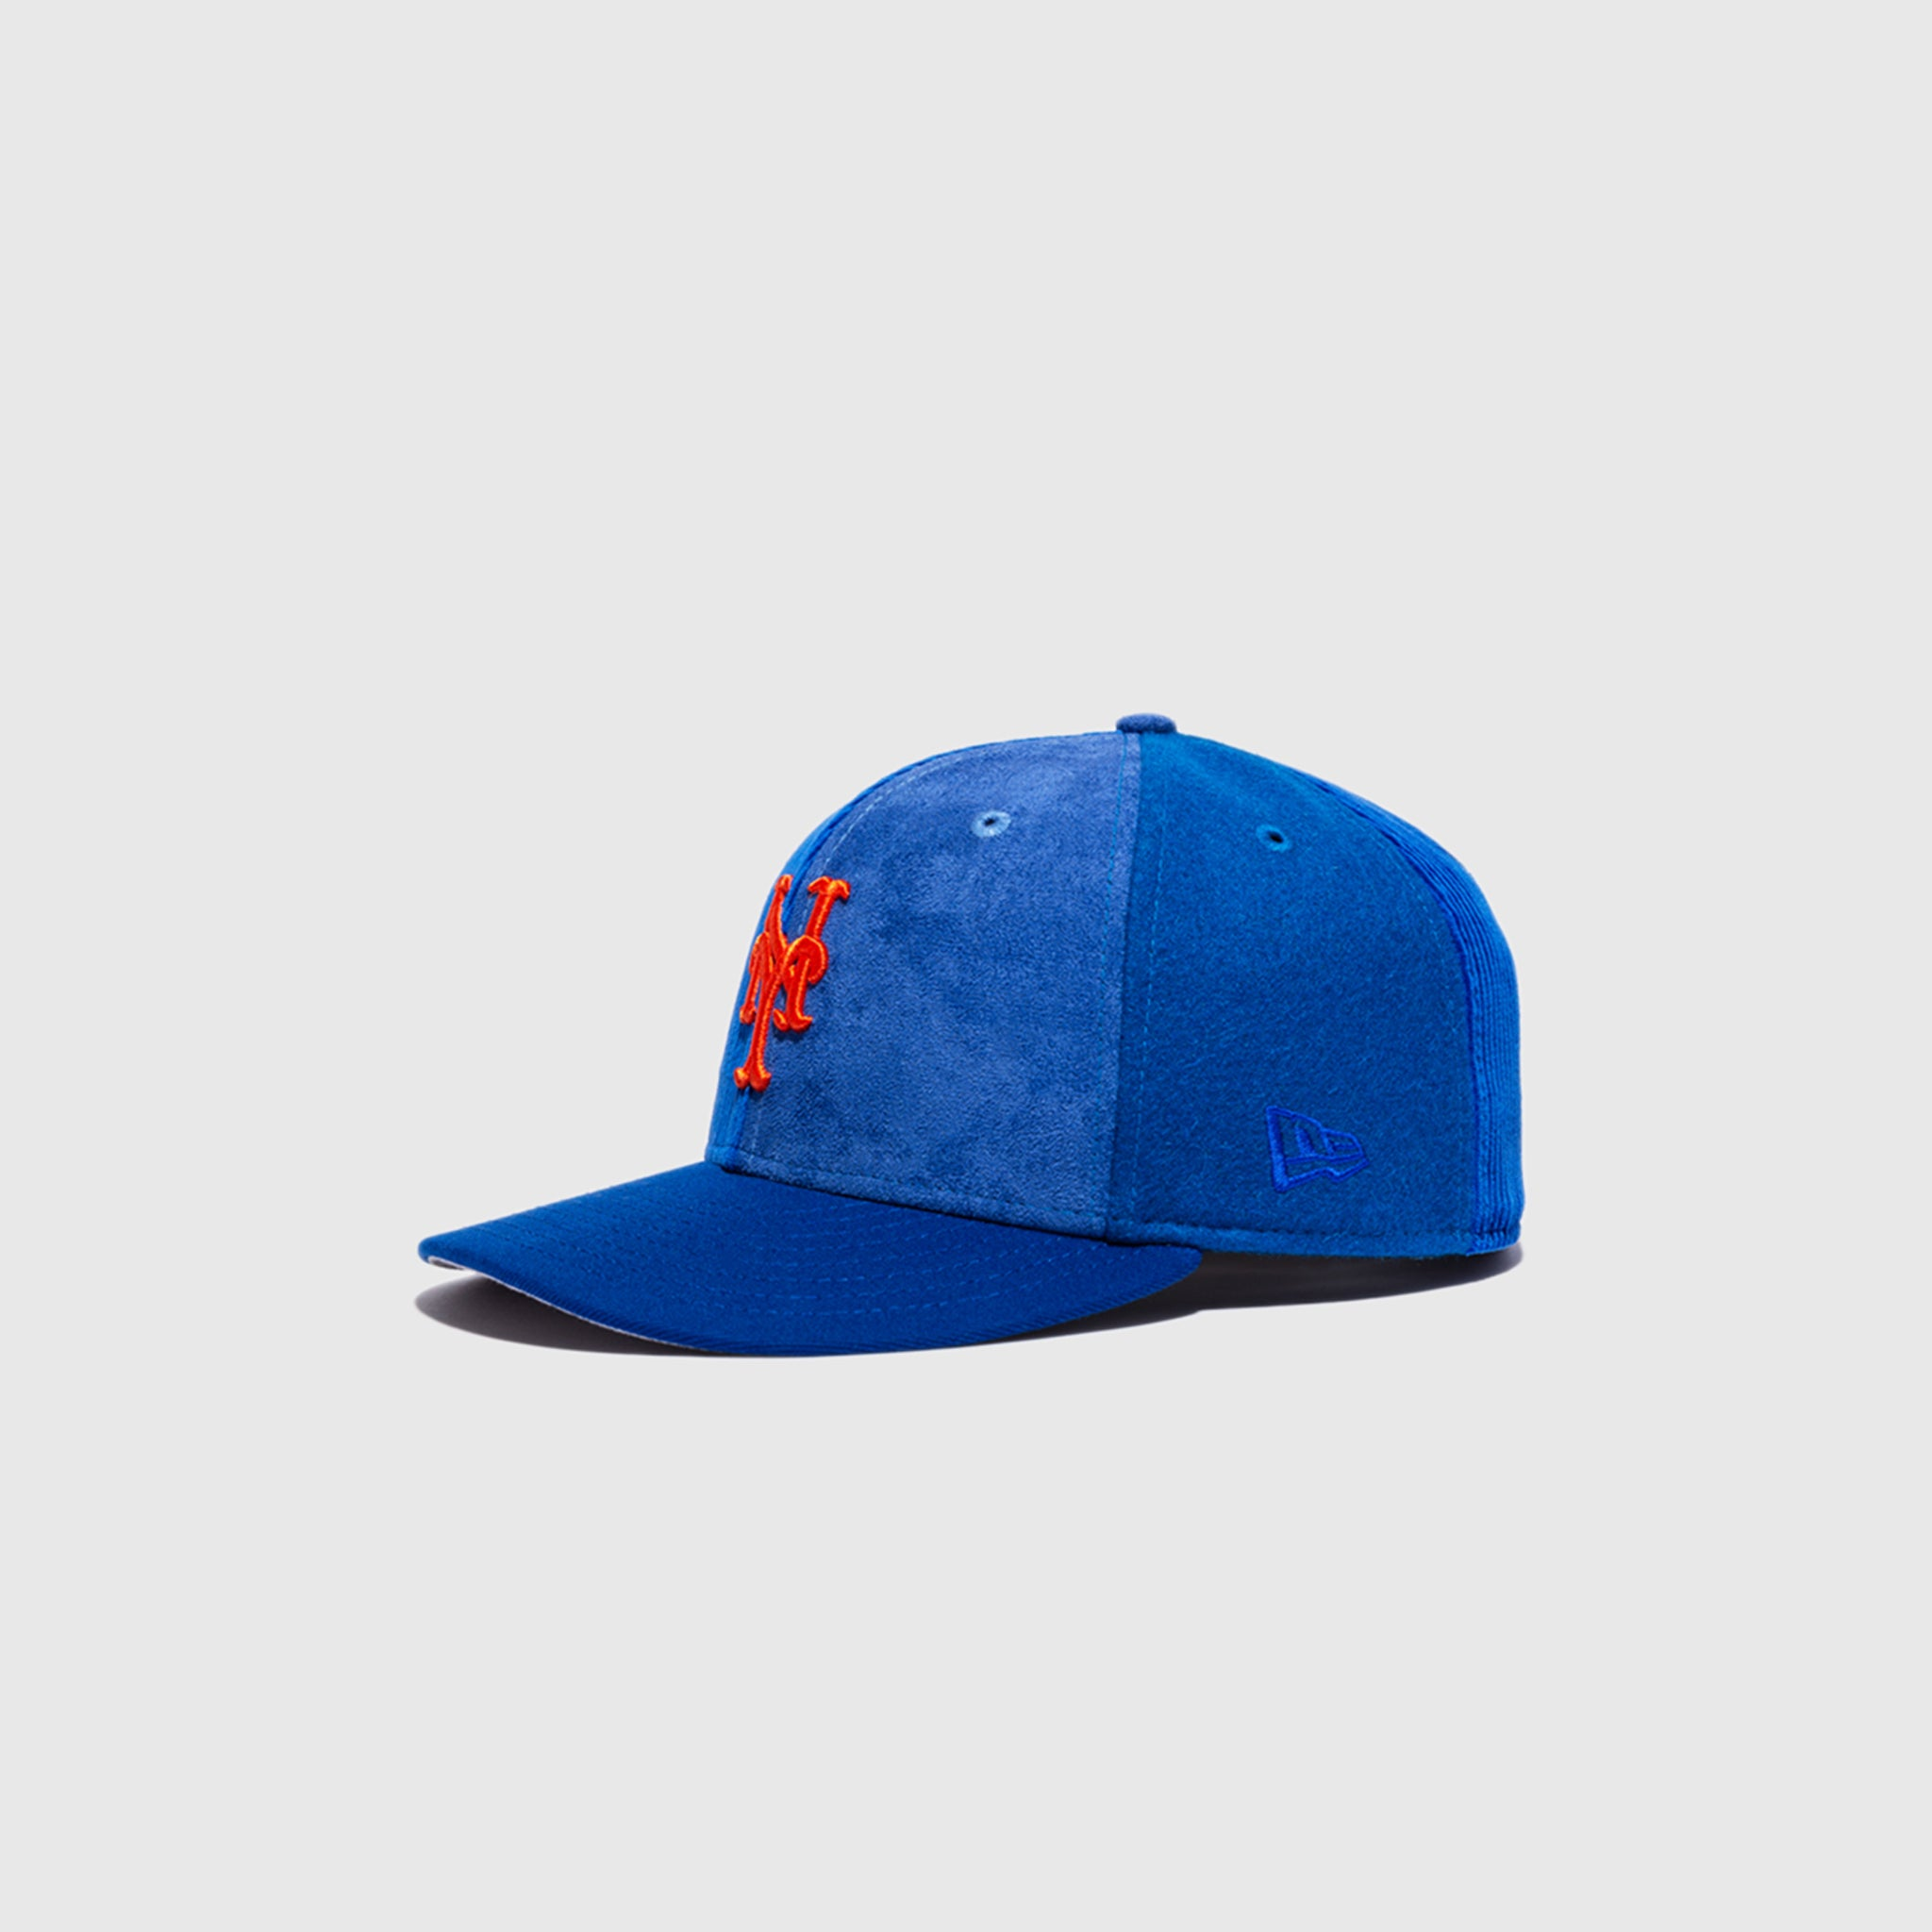 PACKER X NEW ERA PATCHWORK NEW YORK METS 59FIFTY FITTED